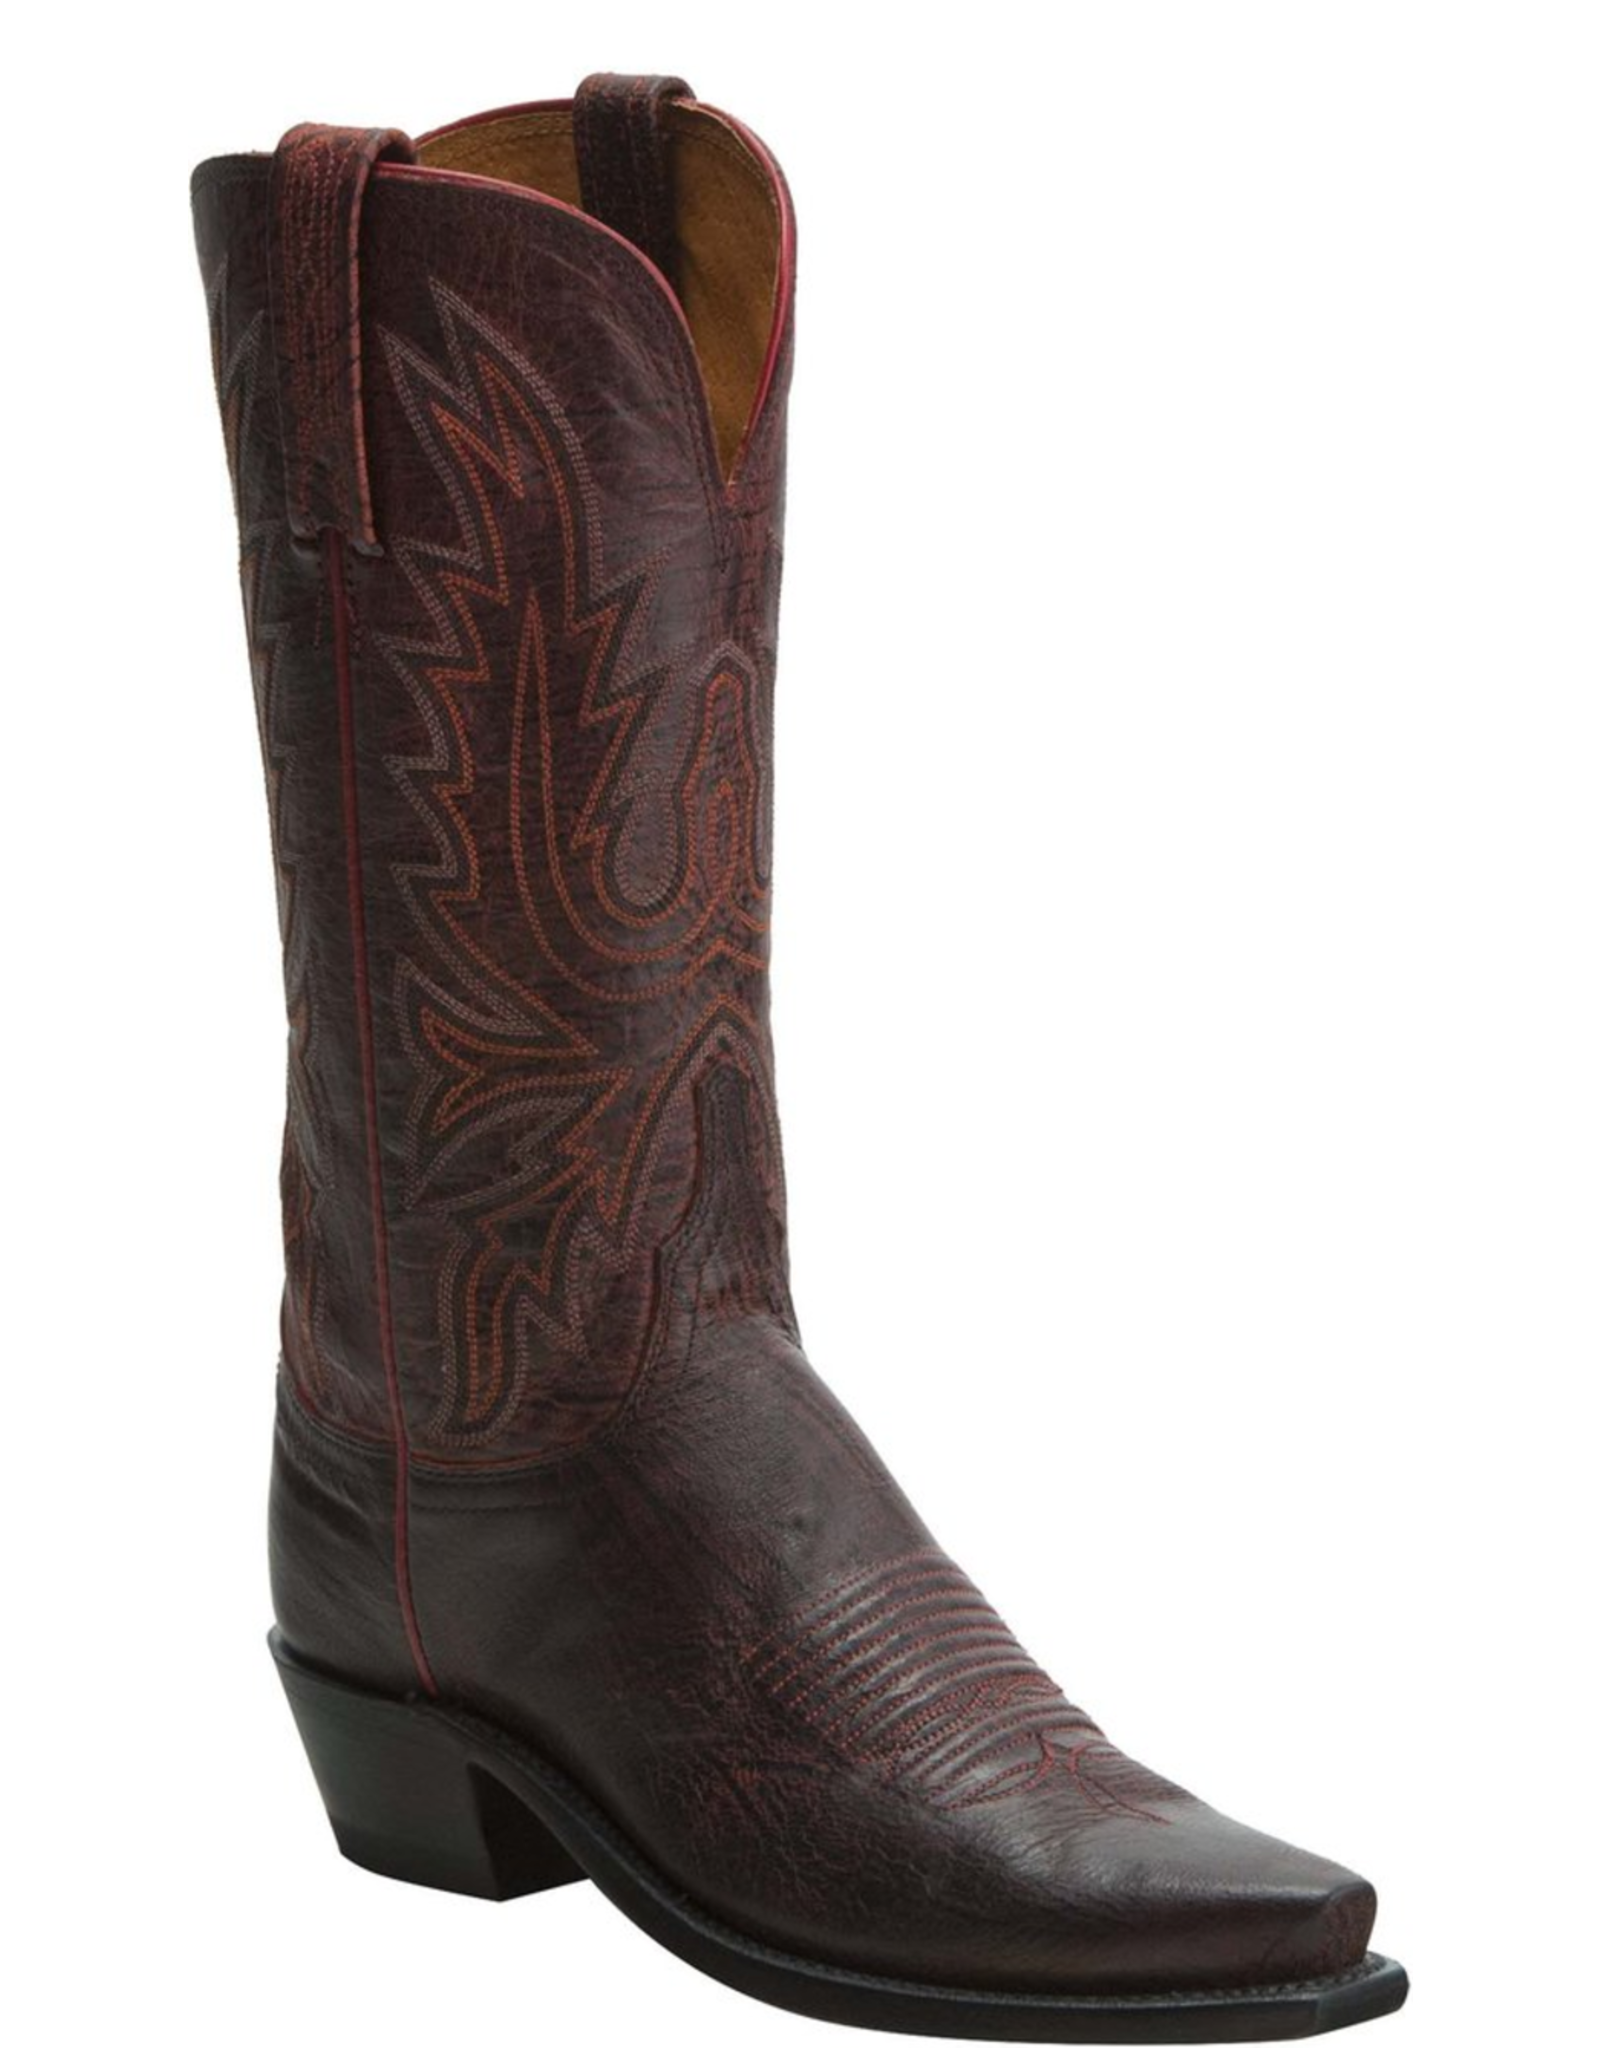 Lucchese Burnished Goat Boots